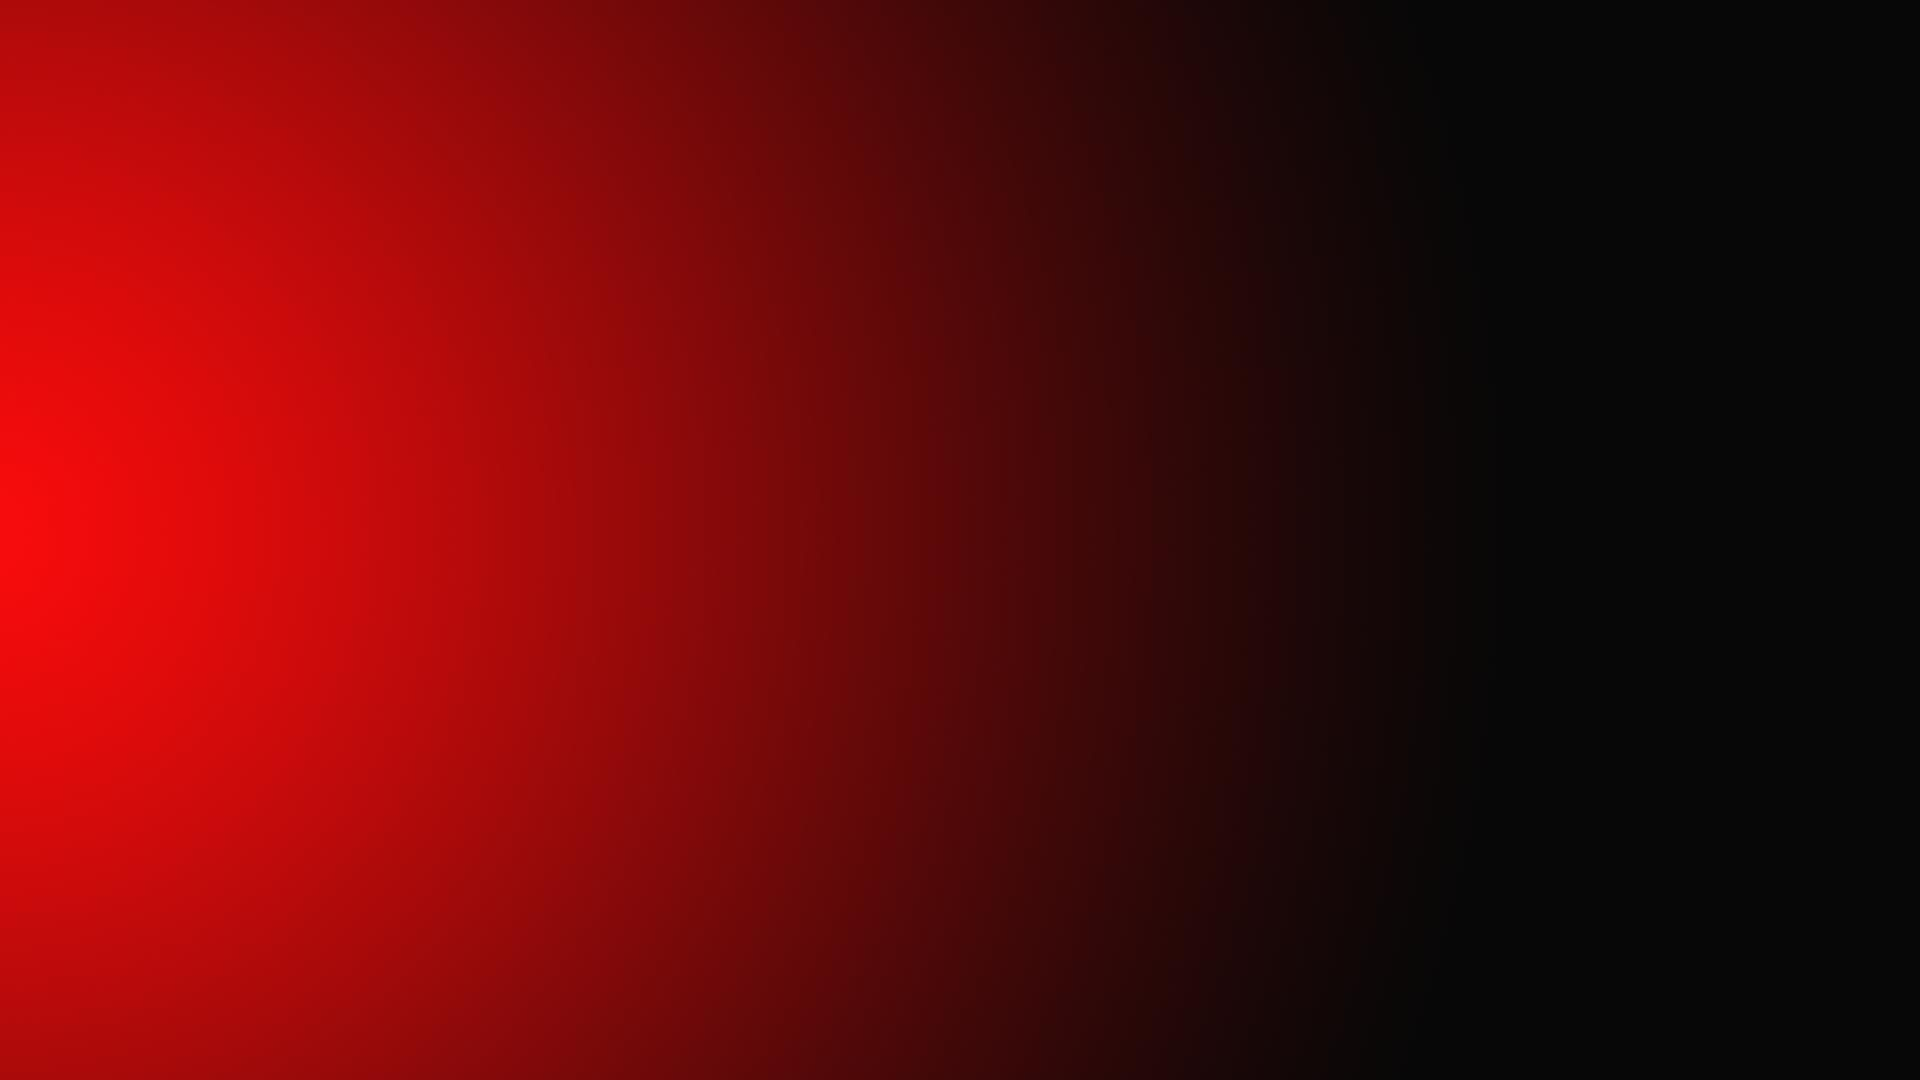 Red And Black Background Google Search Red Gradient Background Dark Red Wallpaper Free Background Images